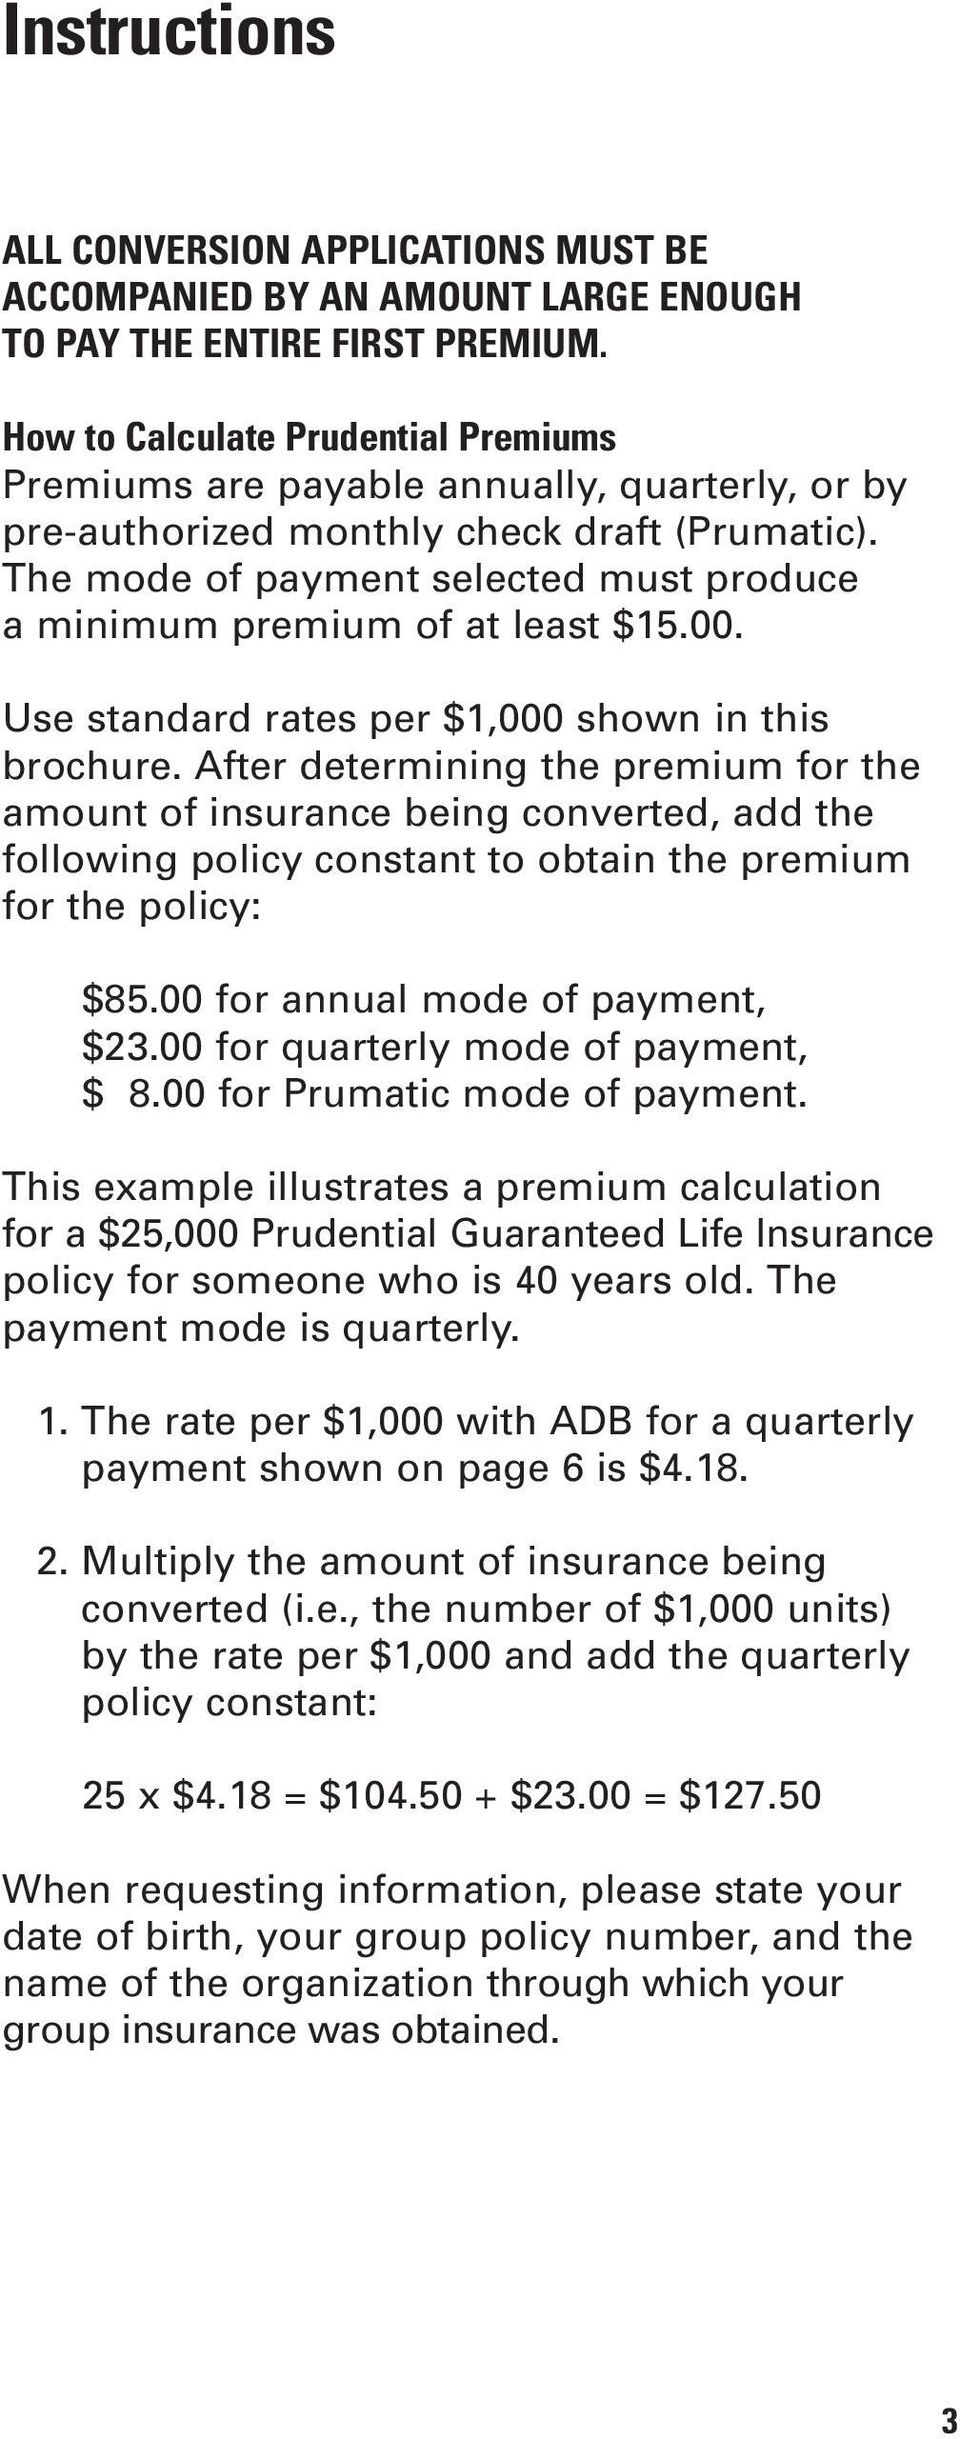 The mode of payment selected must produce a minimum premium of at least $15.00. Use standard rates per $1,000 shown in this brochure.